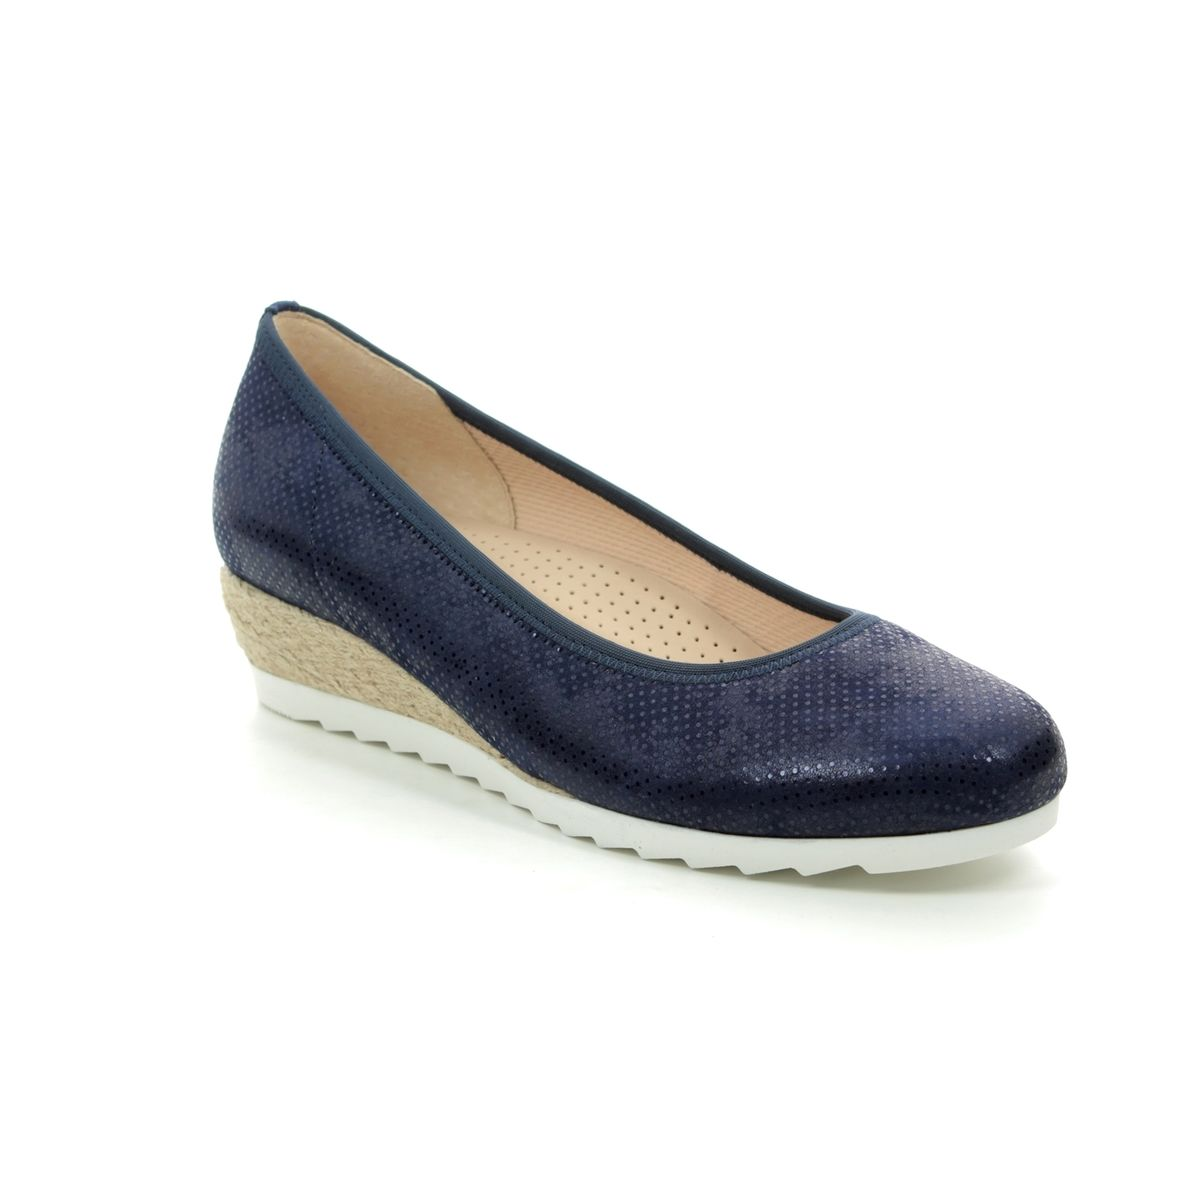 61485cc8e5205 Gabor Wedge Shoes - Navy - 22.641.26 EPWORTH